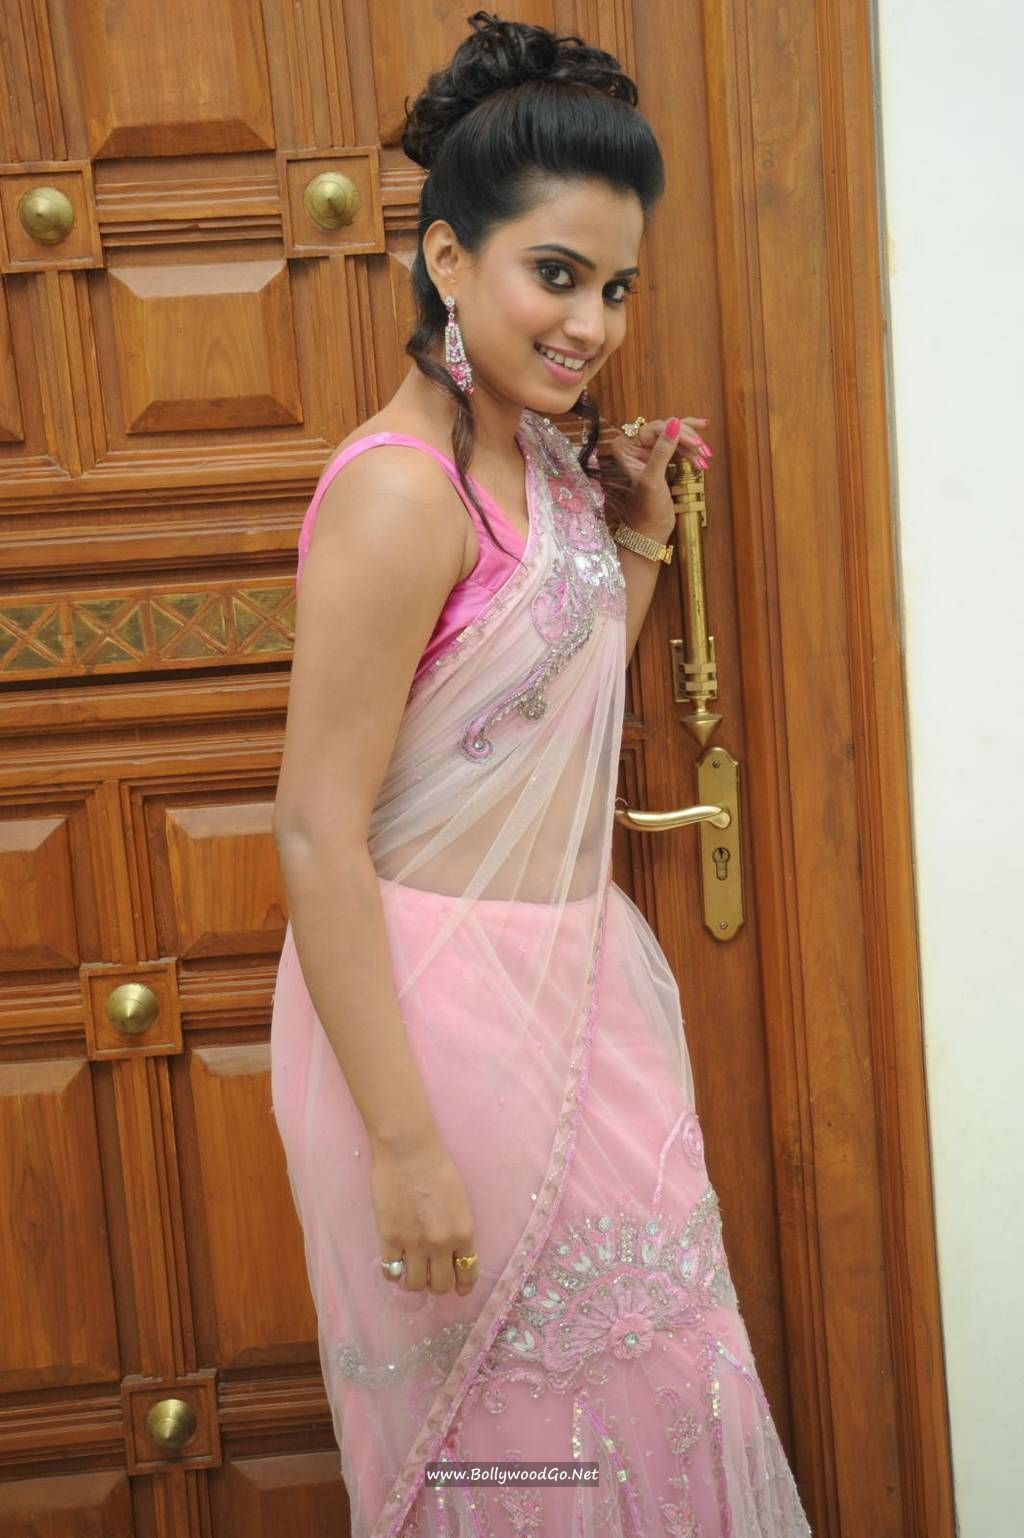 Actress Dimple at Romance Audio Launch Event Abx5hcfk